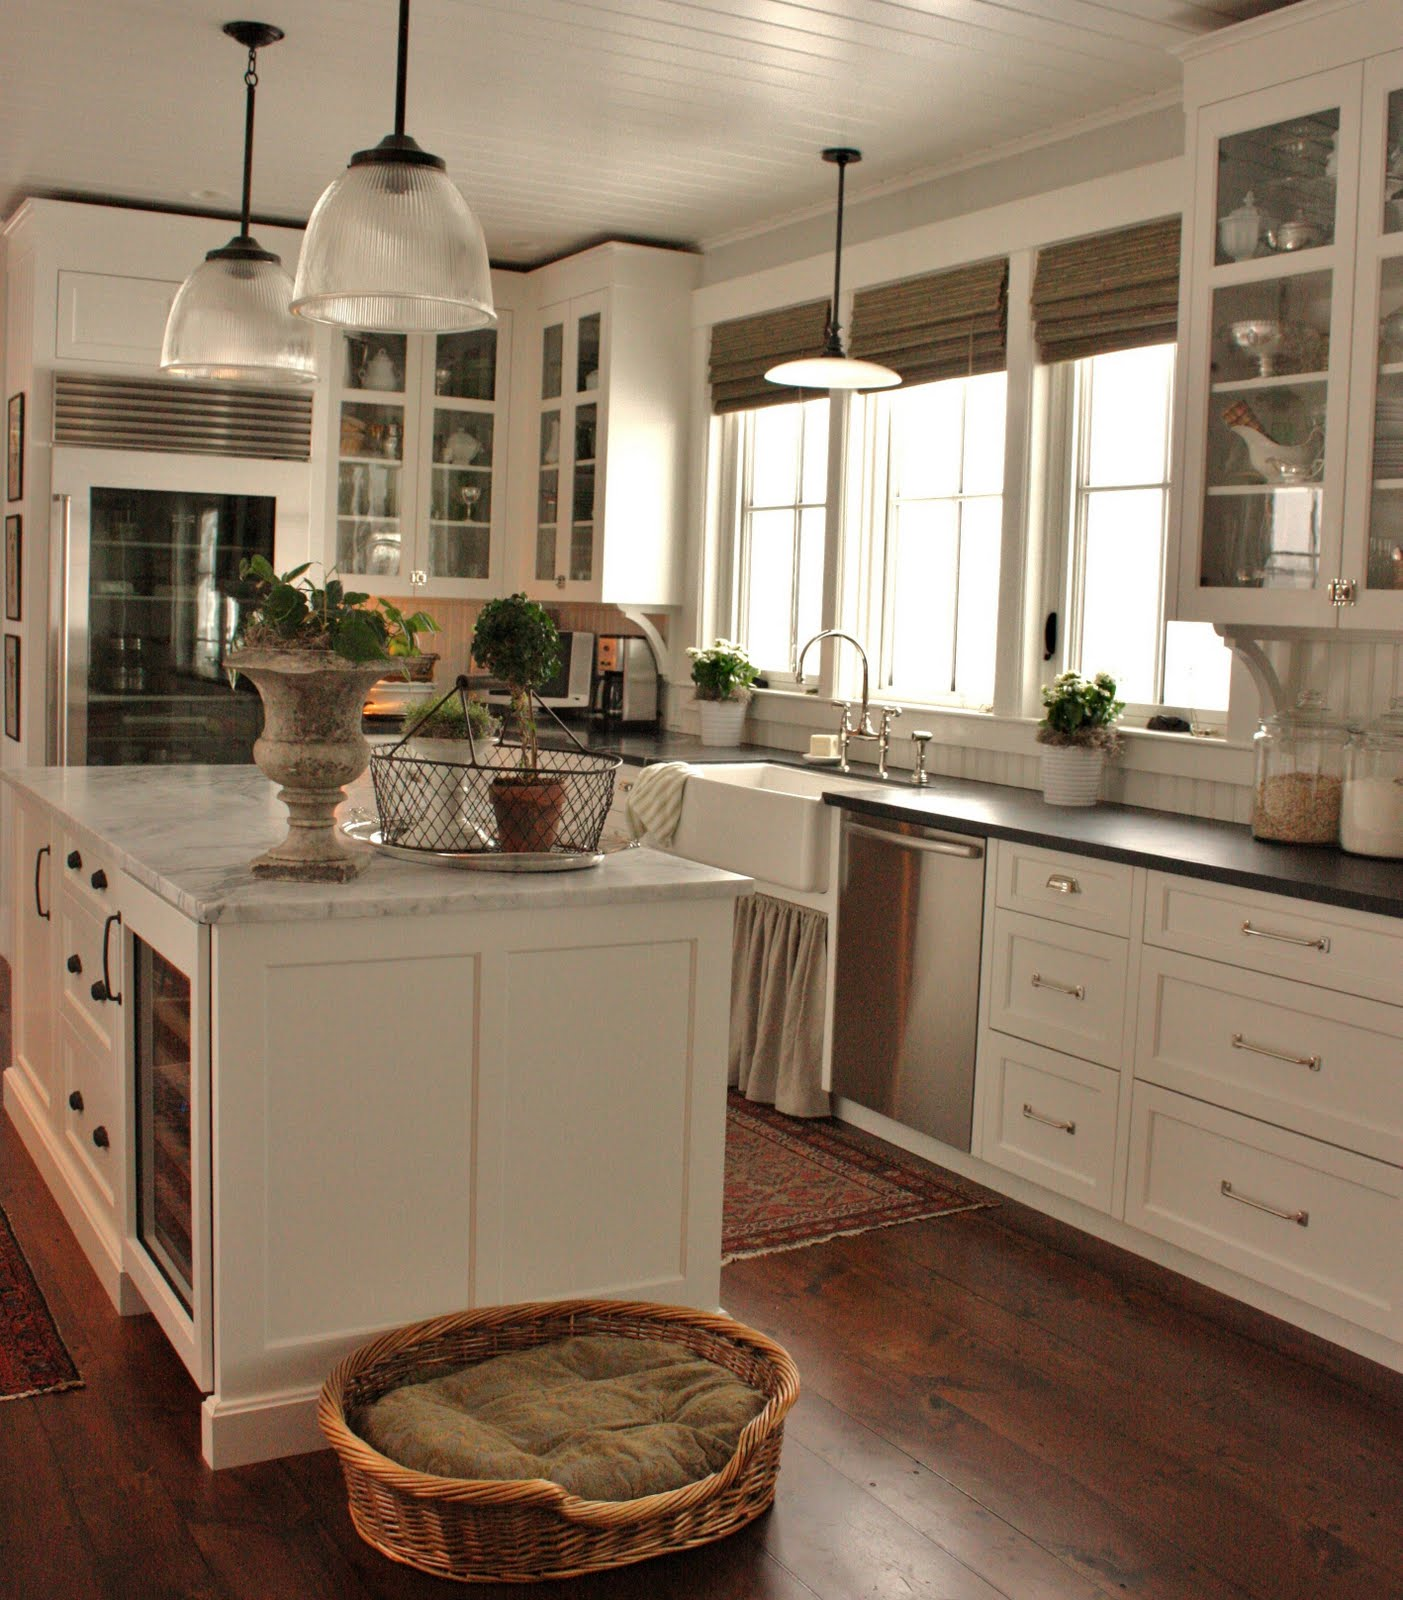 25 Stunning Farmhouse Kitchen Design Ideas